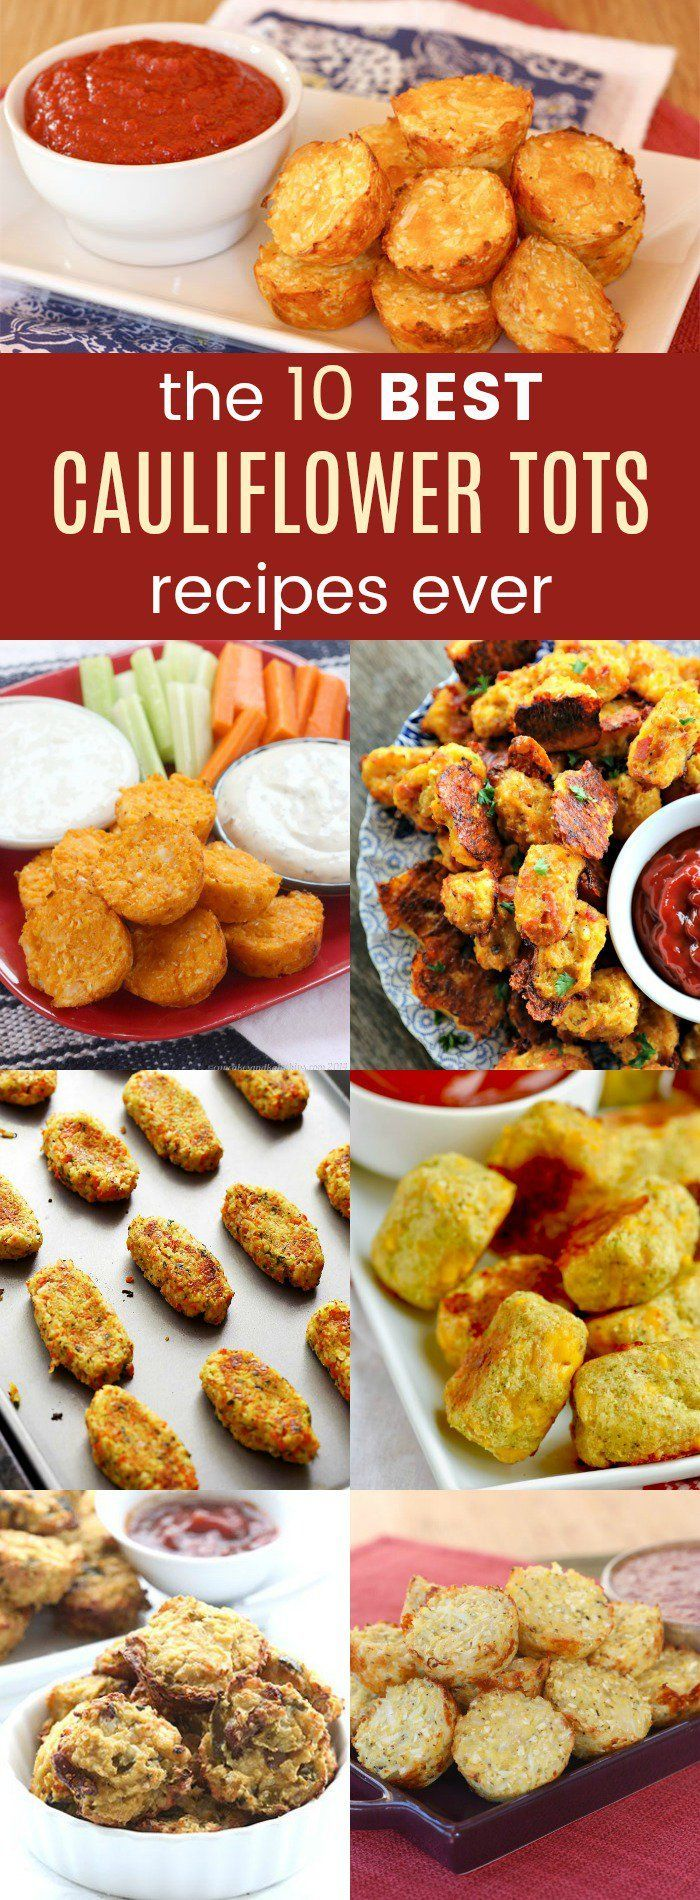 2161 best parade magazines best recipes images on pinterest the 10 best cauliflower tots recipes ever forumfinder Gallery